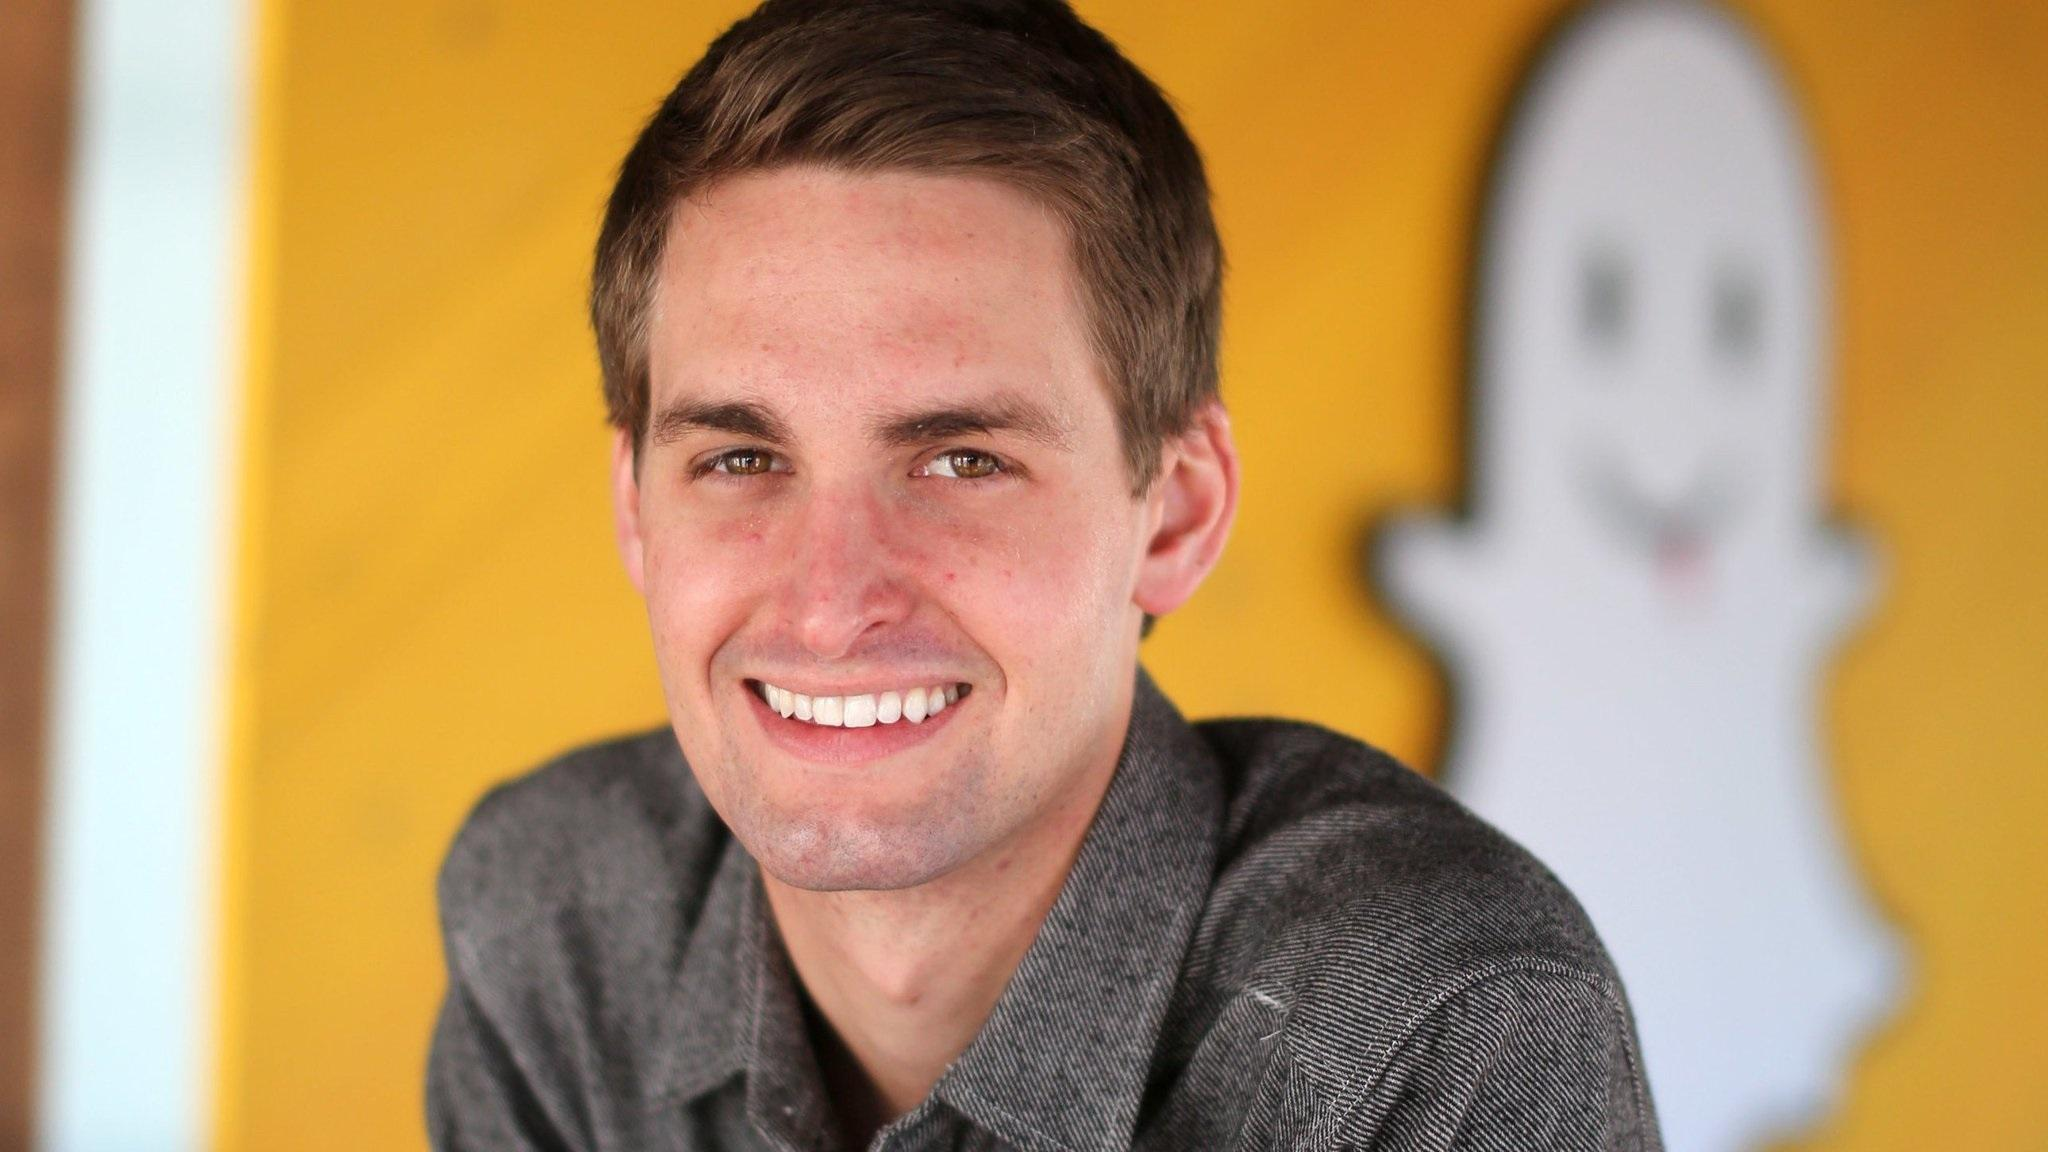 Why Snap Stock is Tanking After Tuesday's Earnings Report